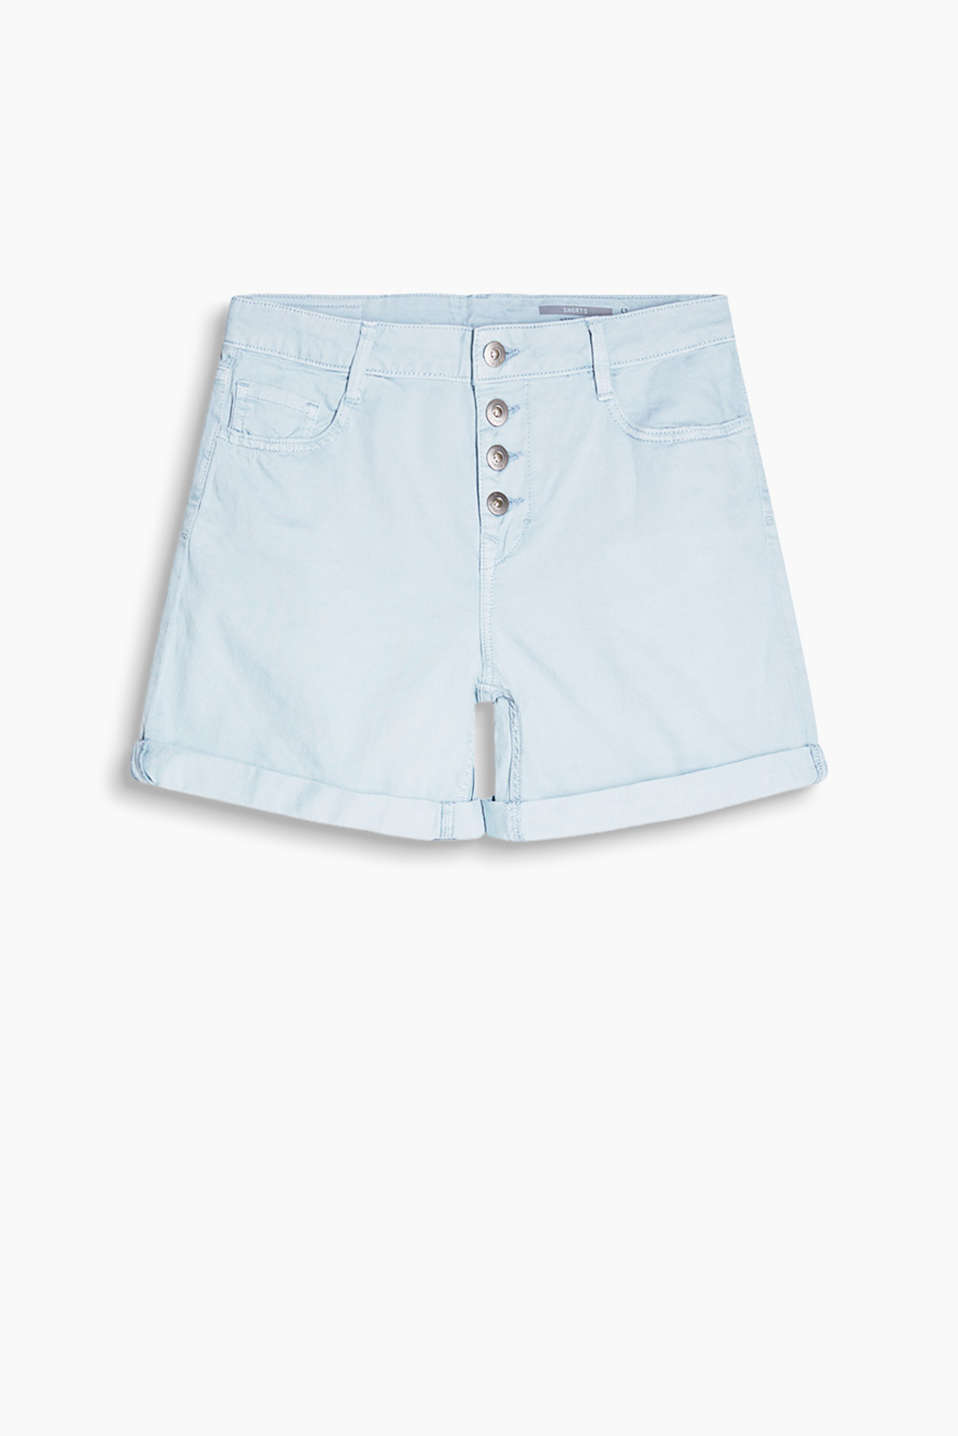 Casual dyed denim shorts with a visible button placket and classic five-pocket design